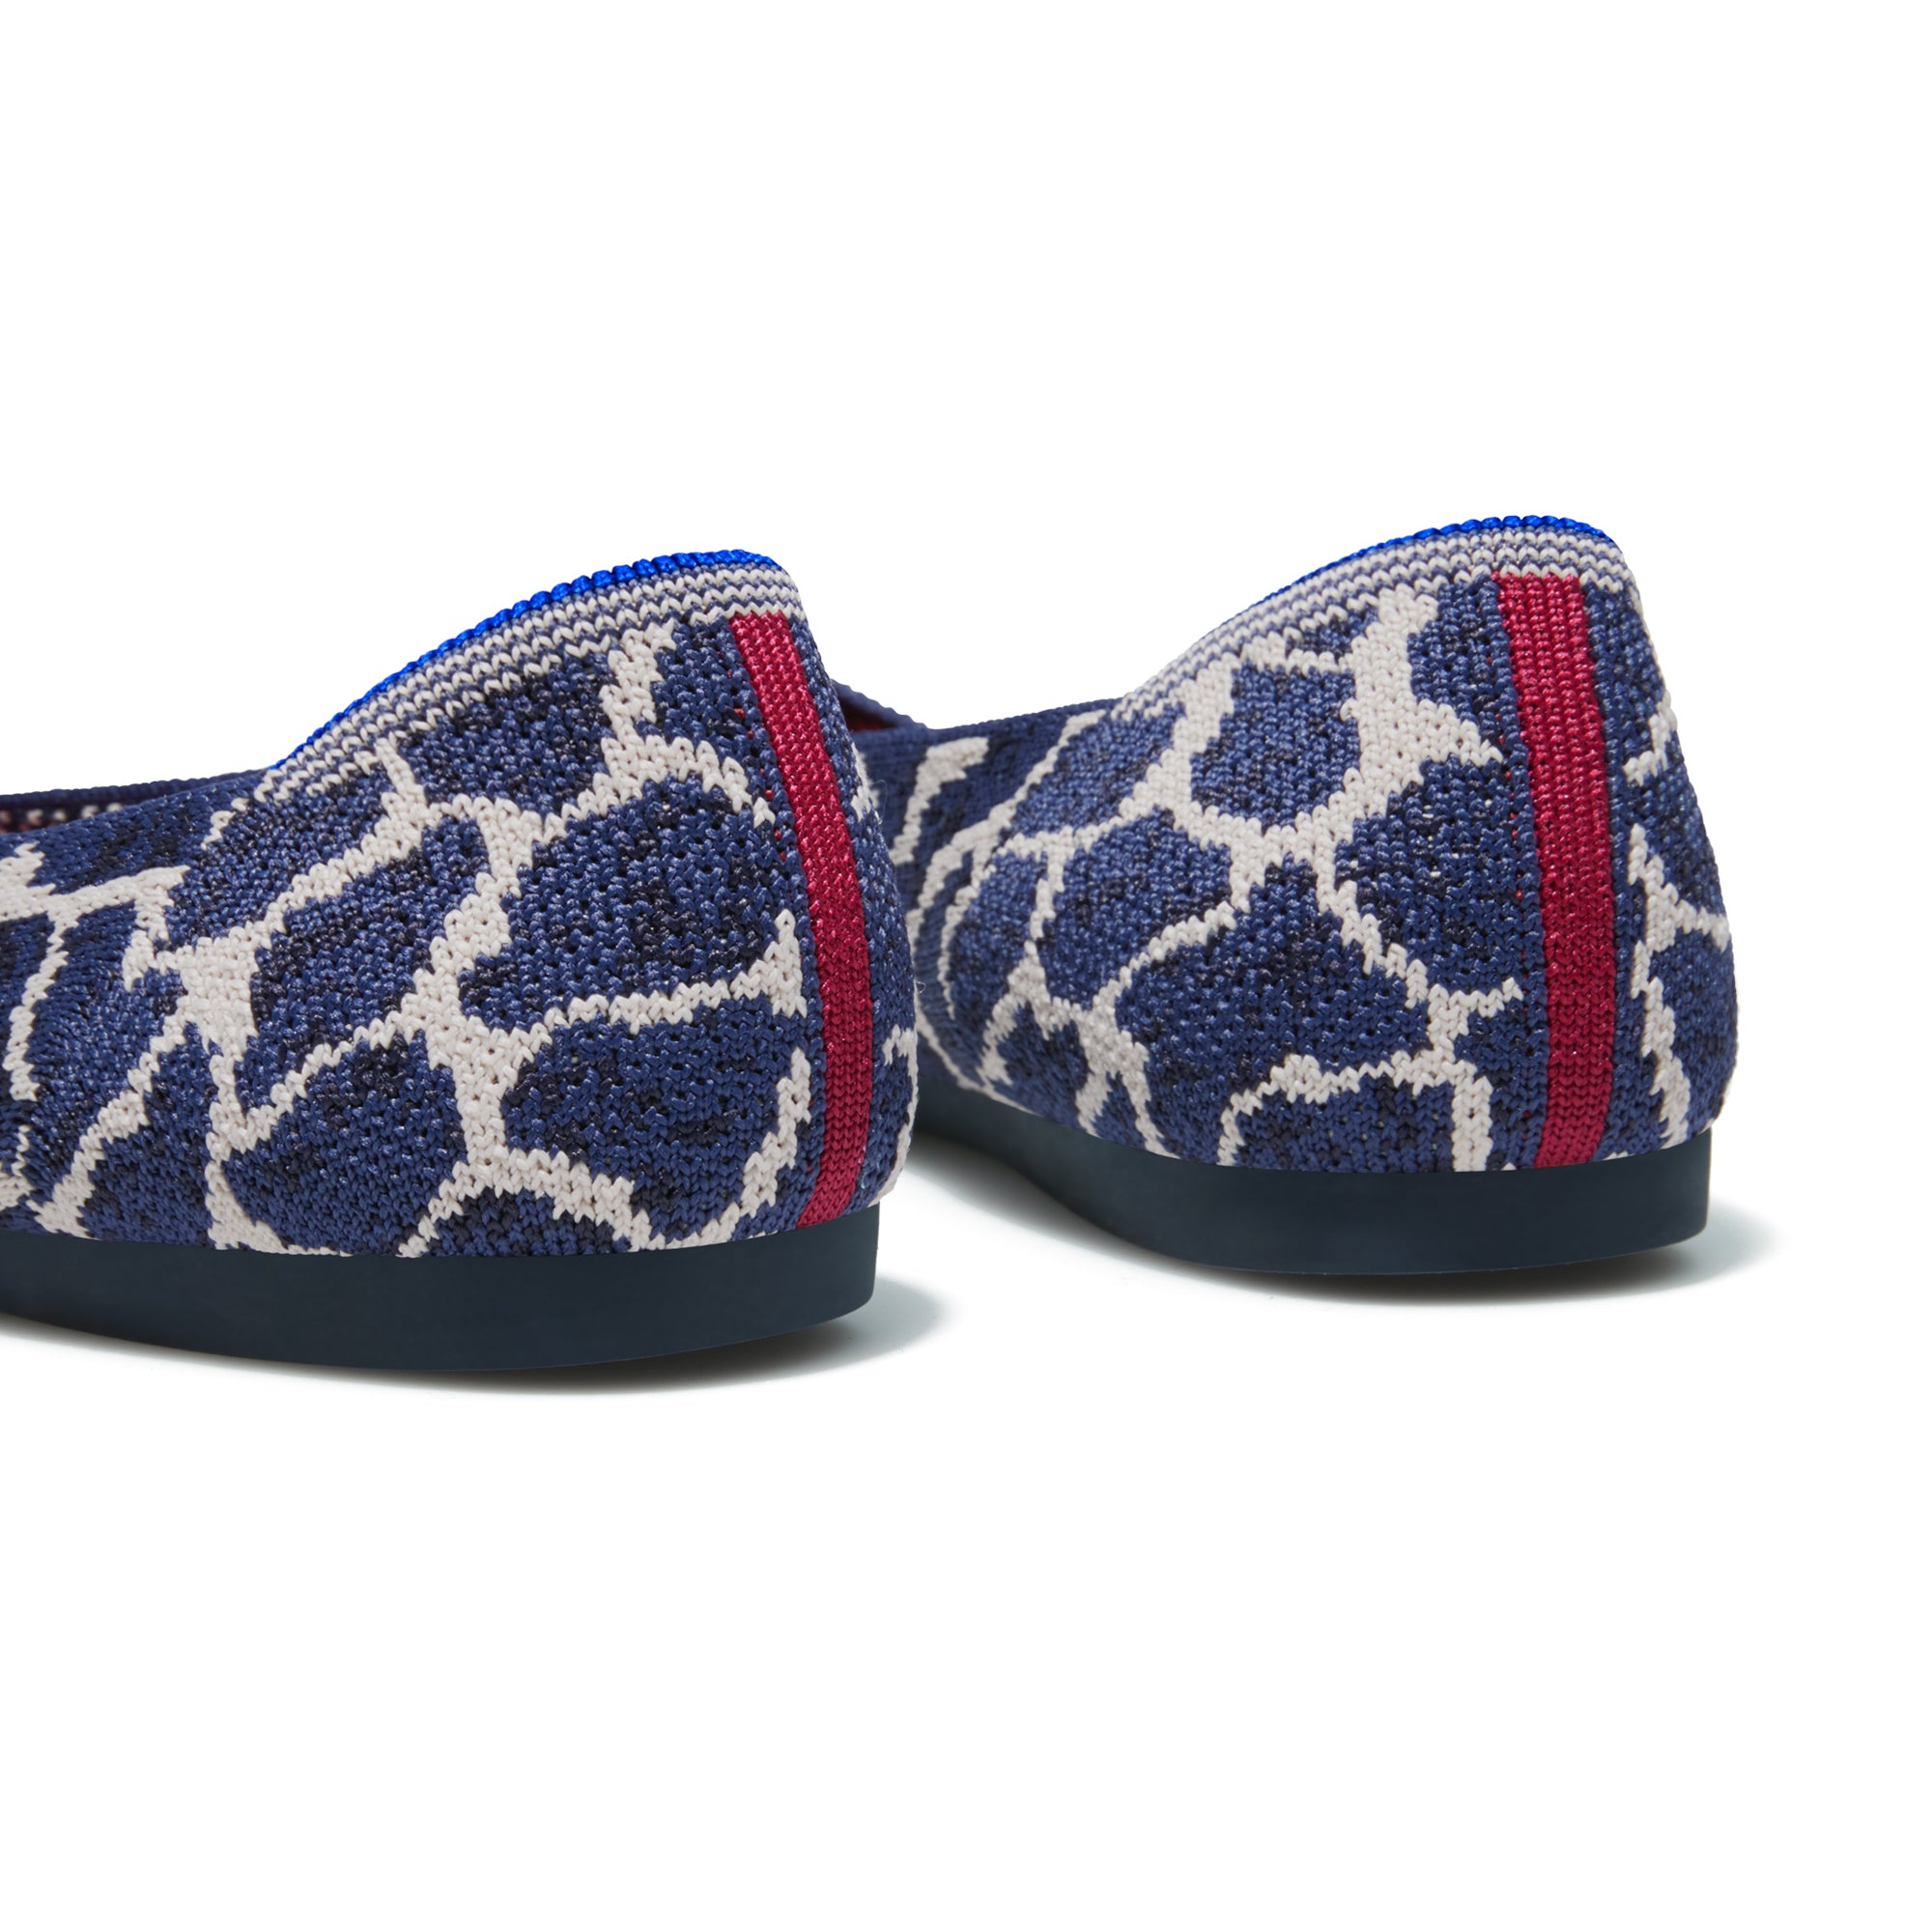 The Point shoe in Indigo Giraffe shown from the back view with the heel detail.